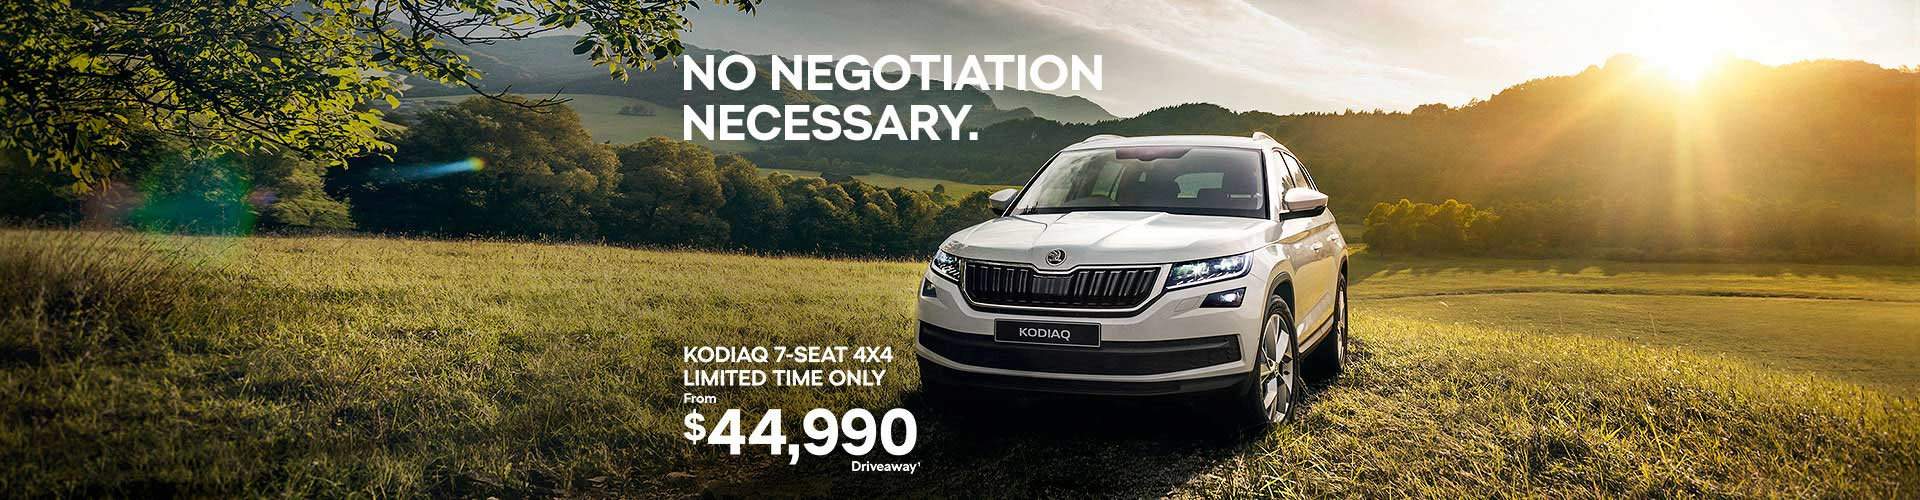 ŠKODA Factory Offer